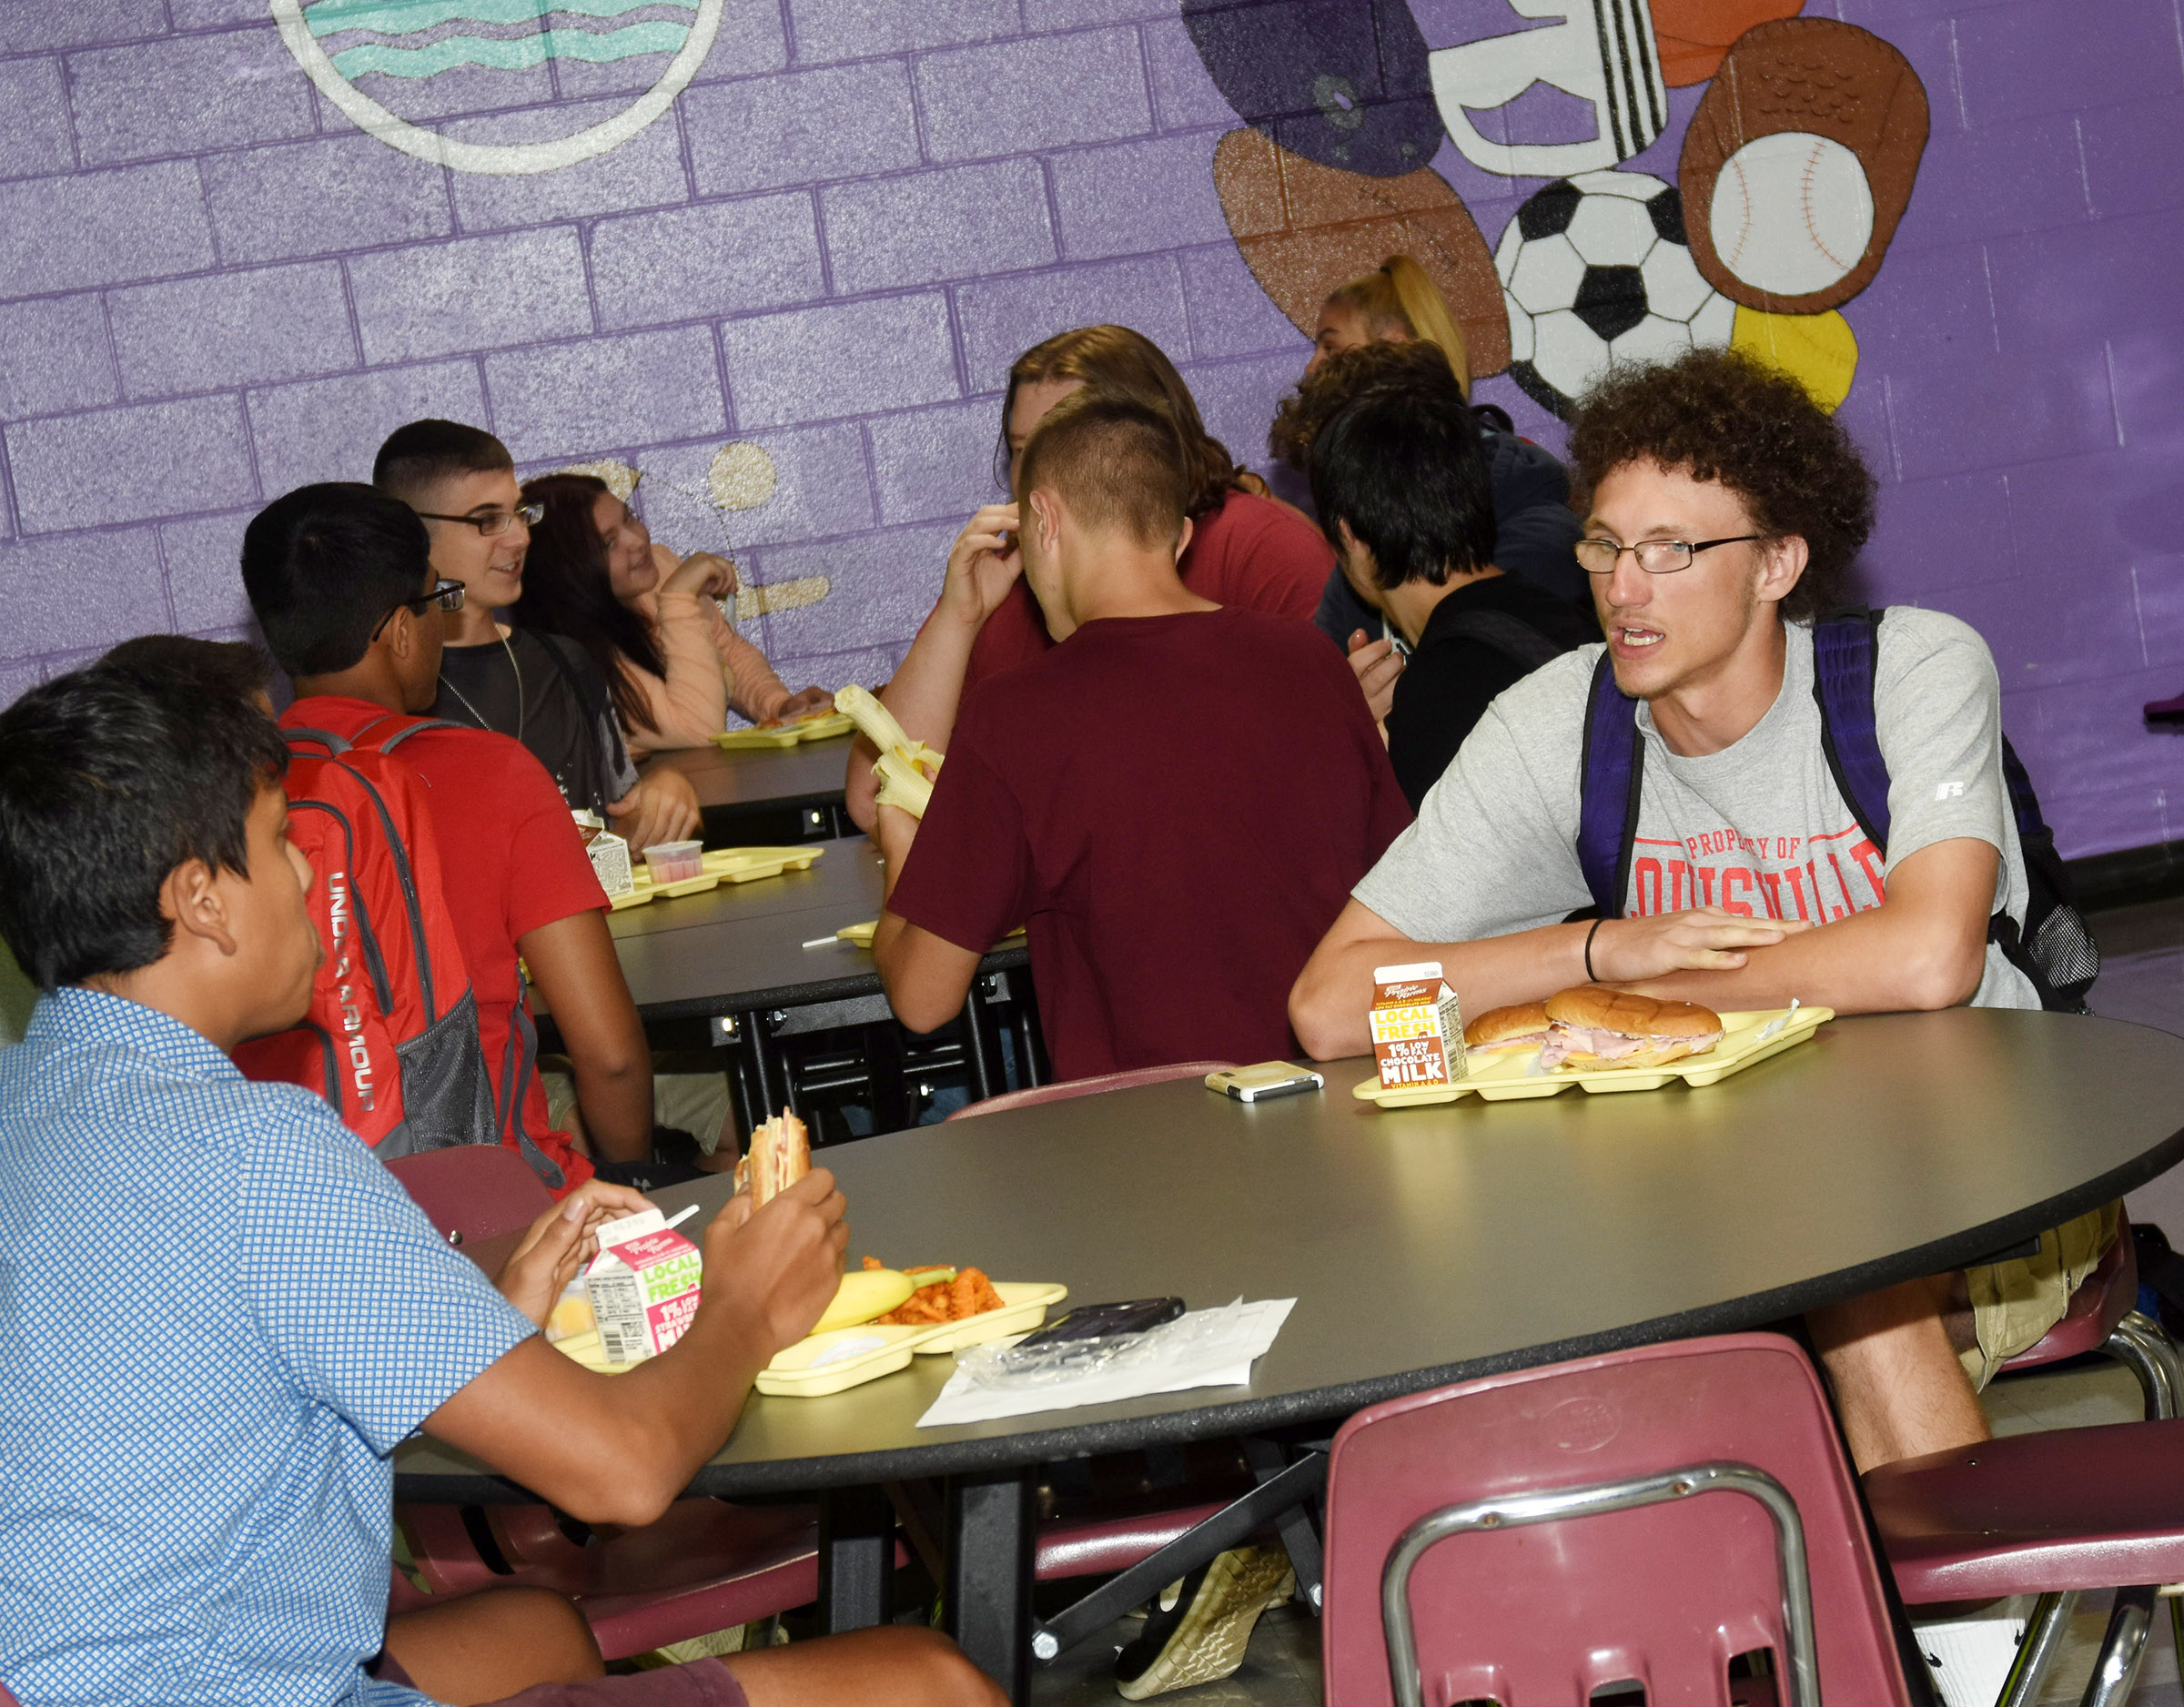 Campbellsville High School junior Brennon Wheeler talks with his classmates at lunch.